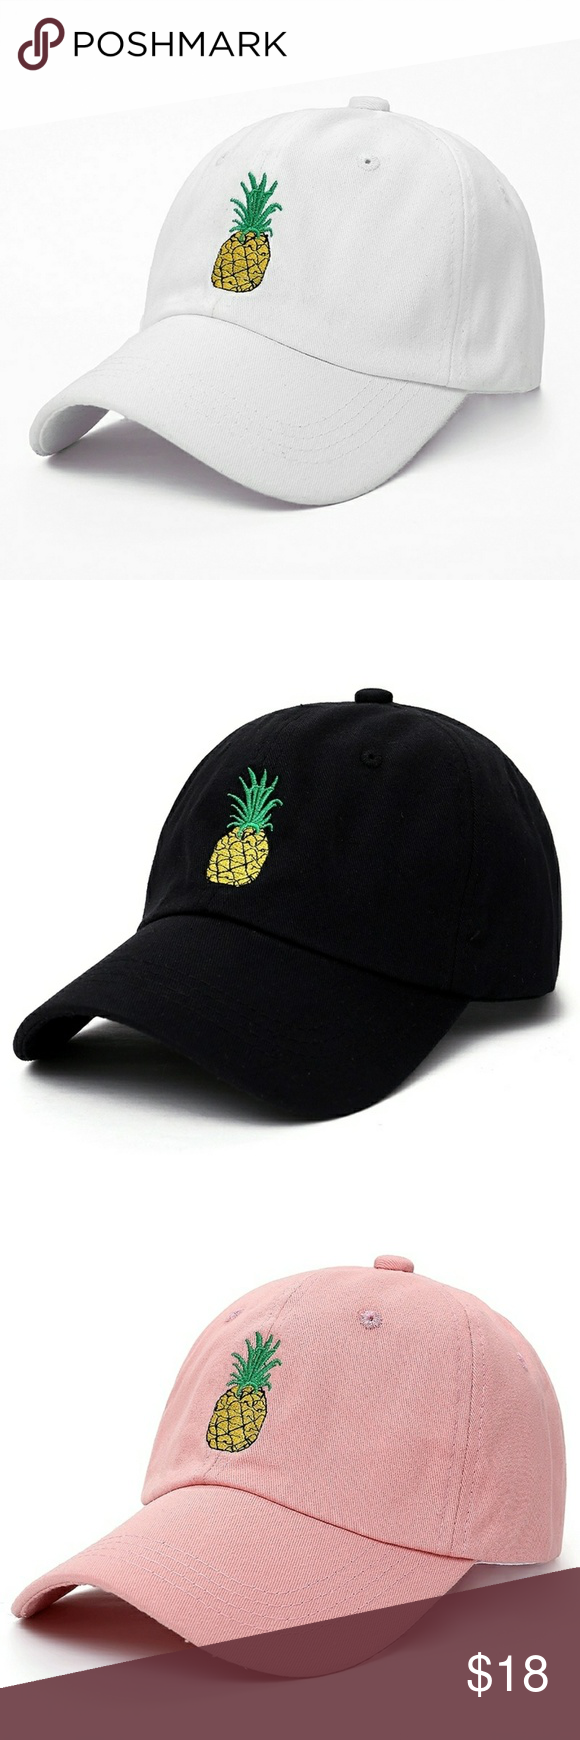 37d4a50a7ec Pineapple Embroidered Dad Hats VORON men women Pineapple Dad Hat Baseball  Cap Polo Style Unconstructed Fashion